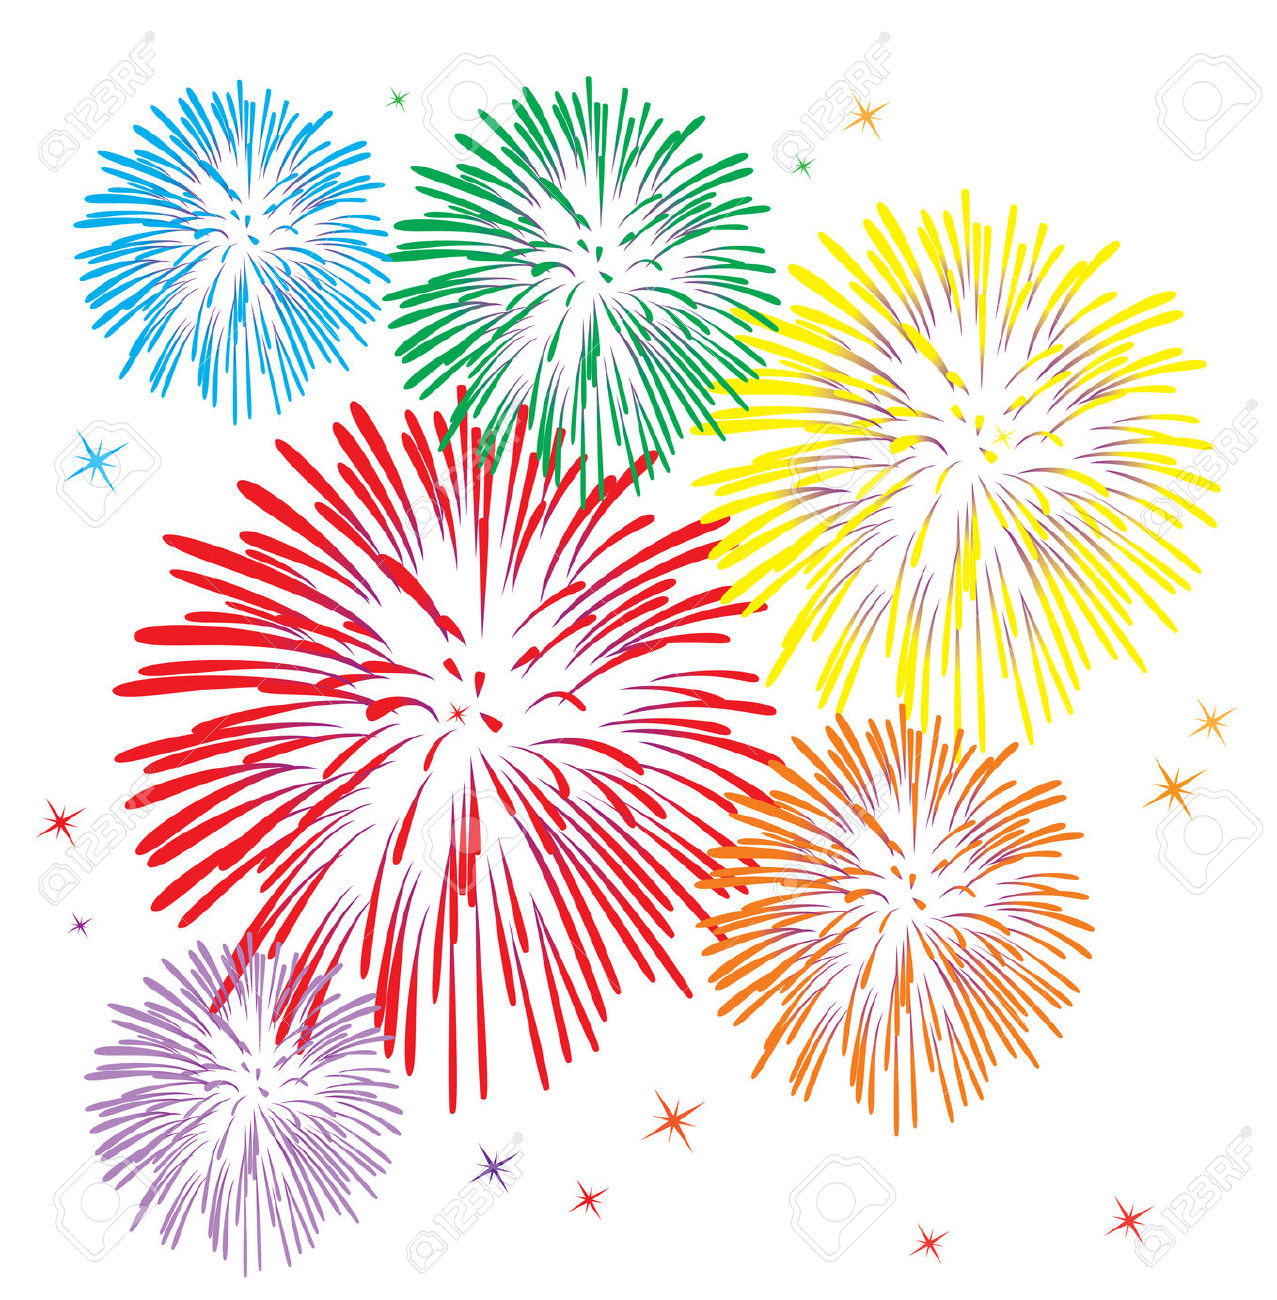 Fireworks clipart colorful firework Download ClipartBarn Fireworks firework clipart